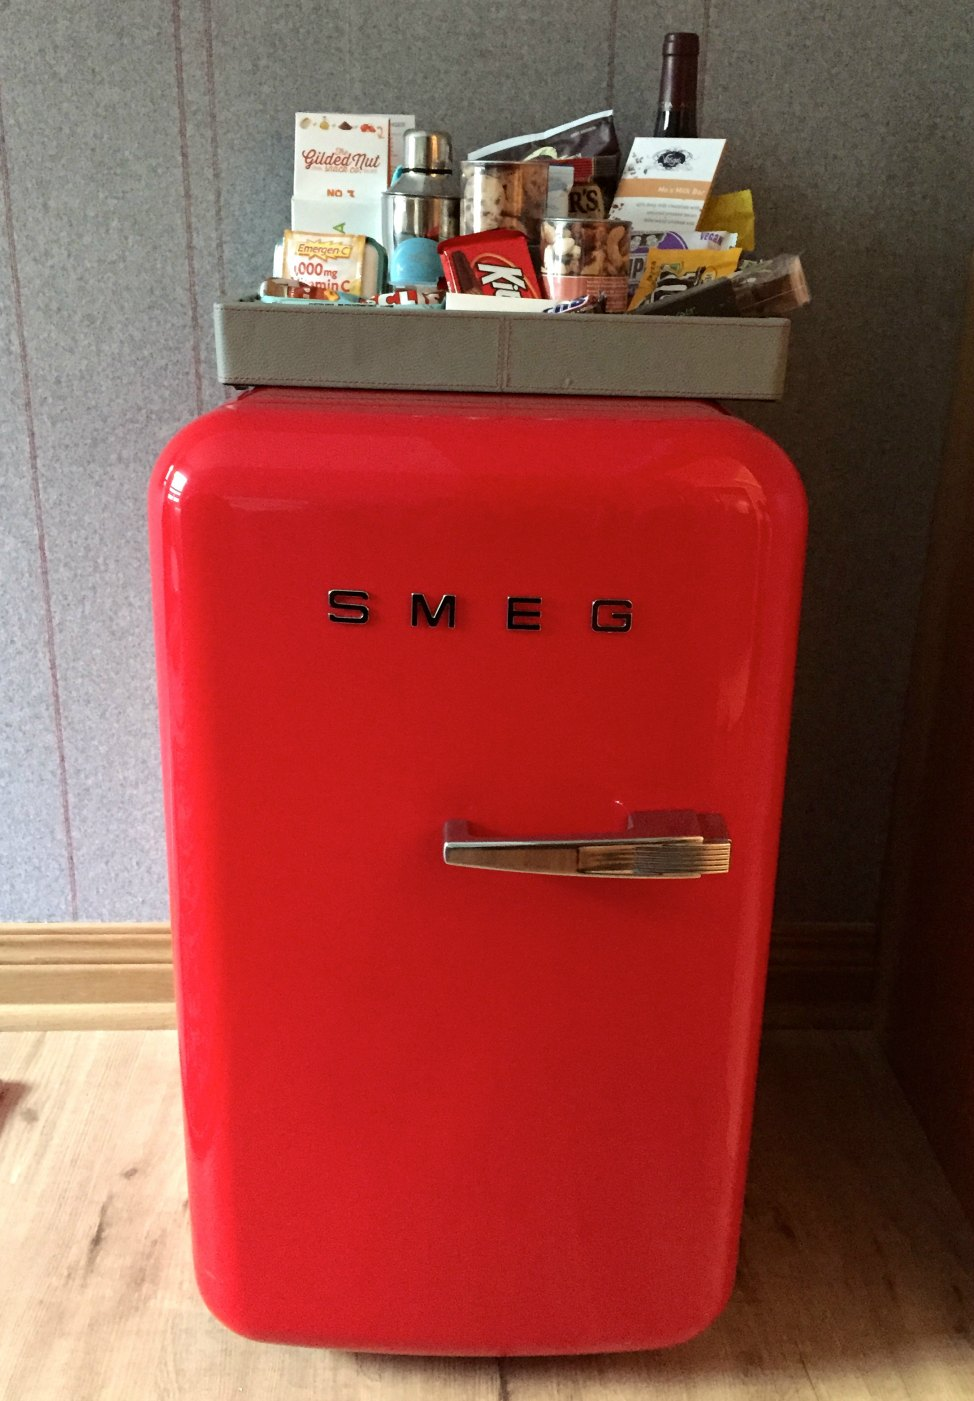 Post_Virgin_Smeg